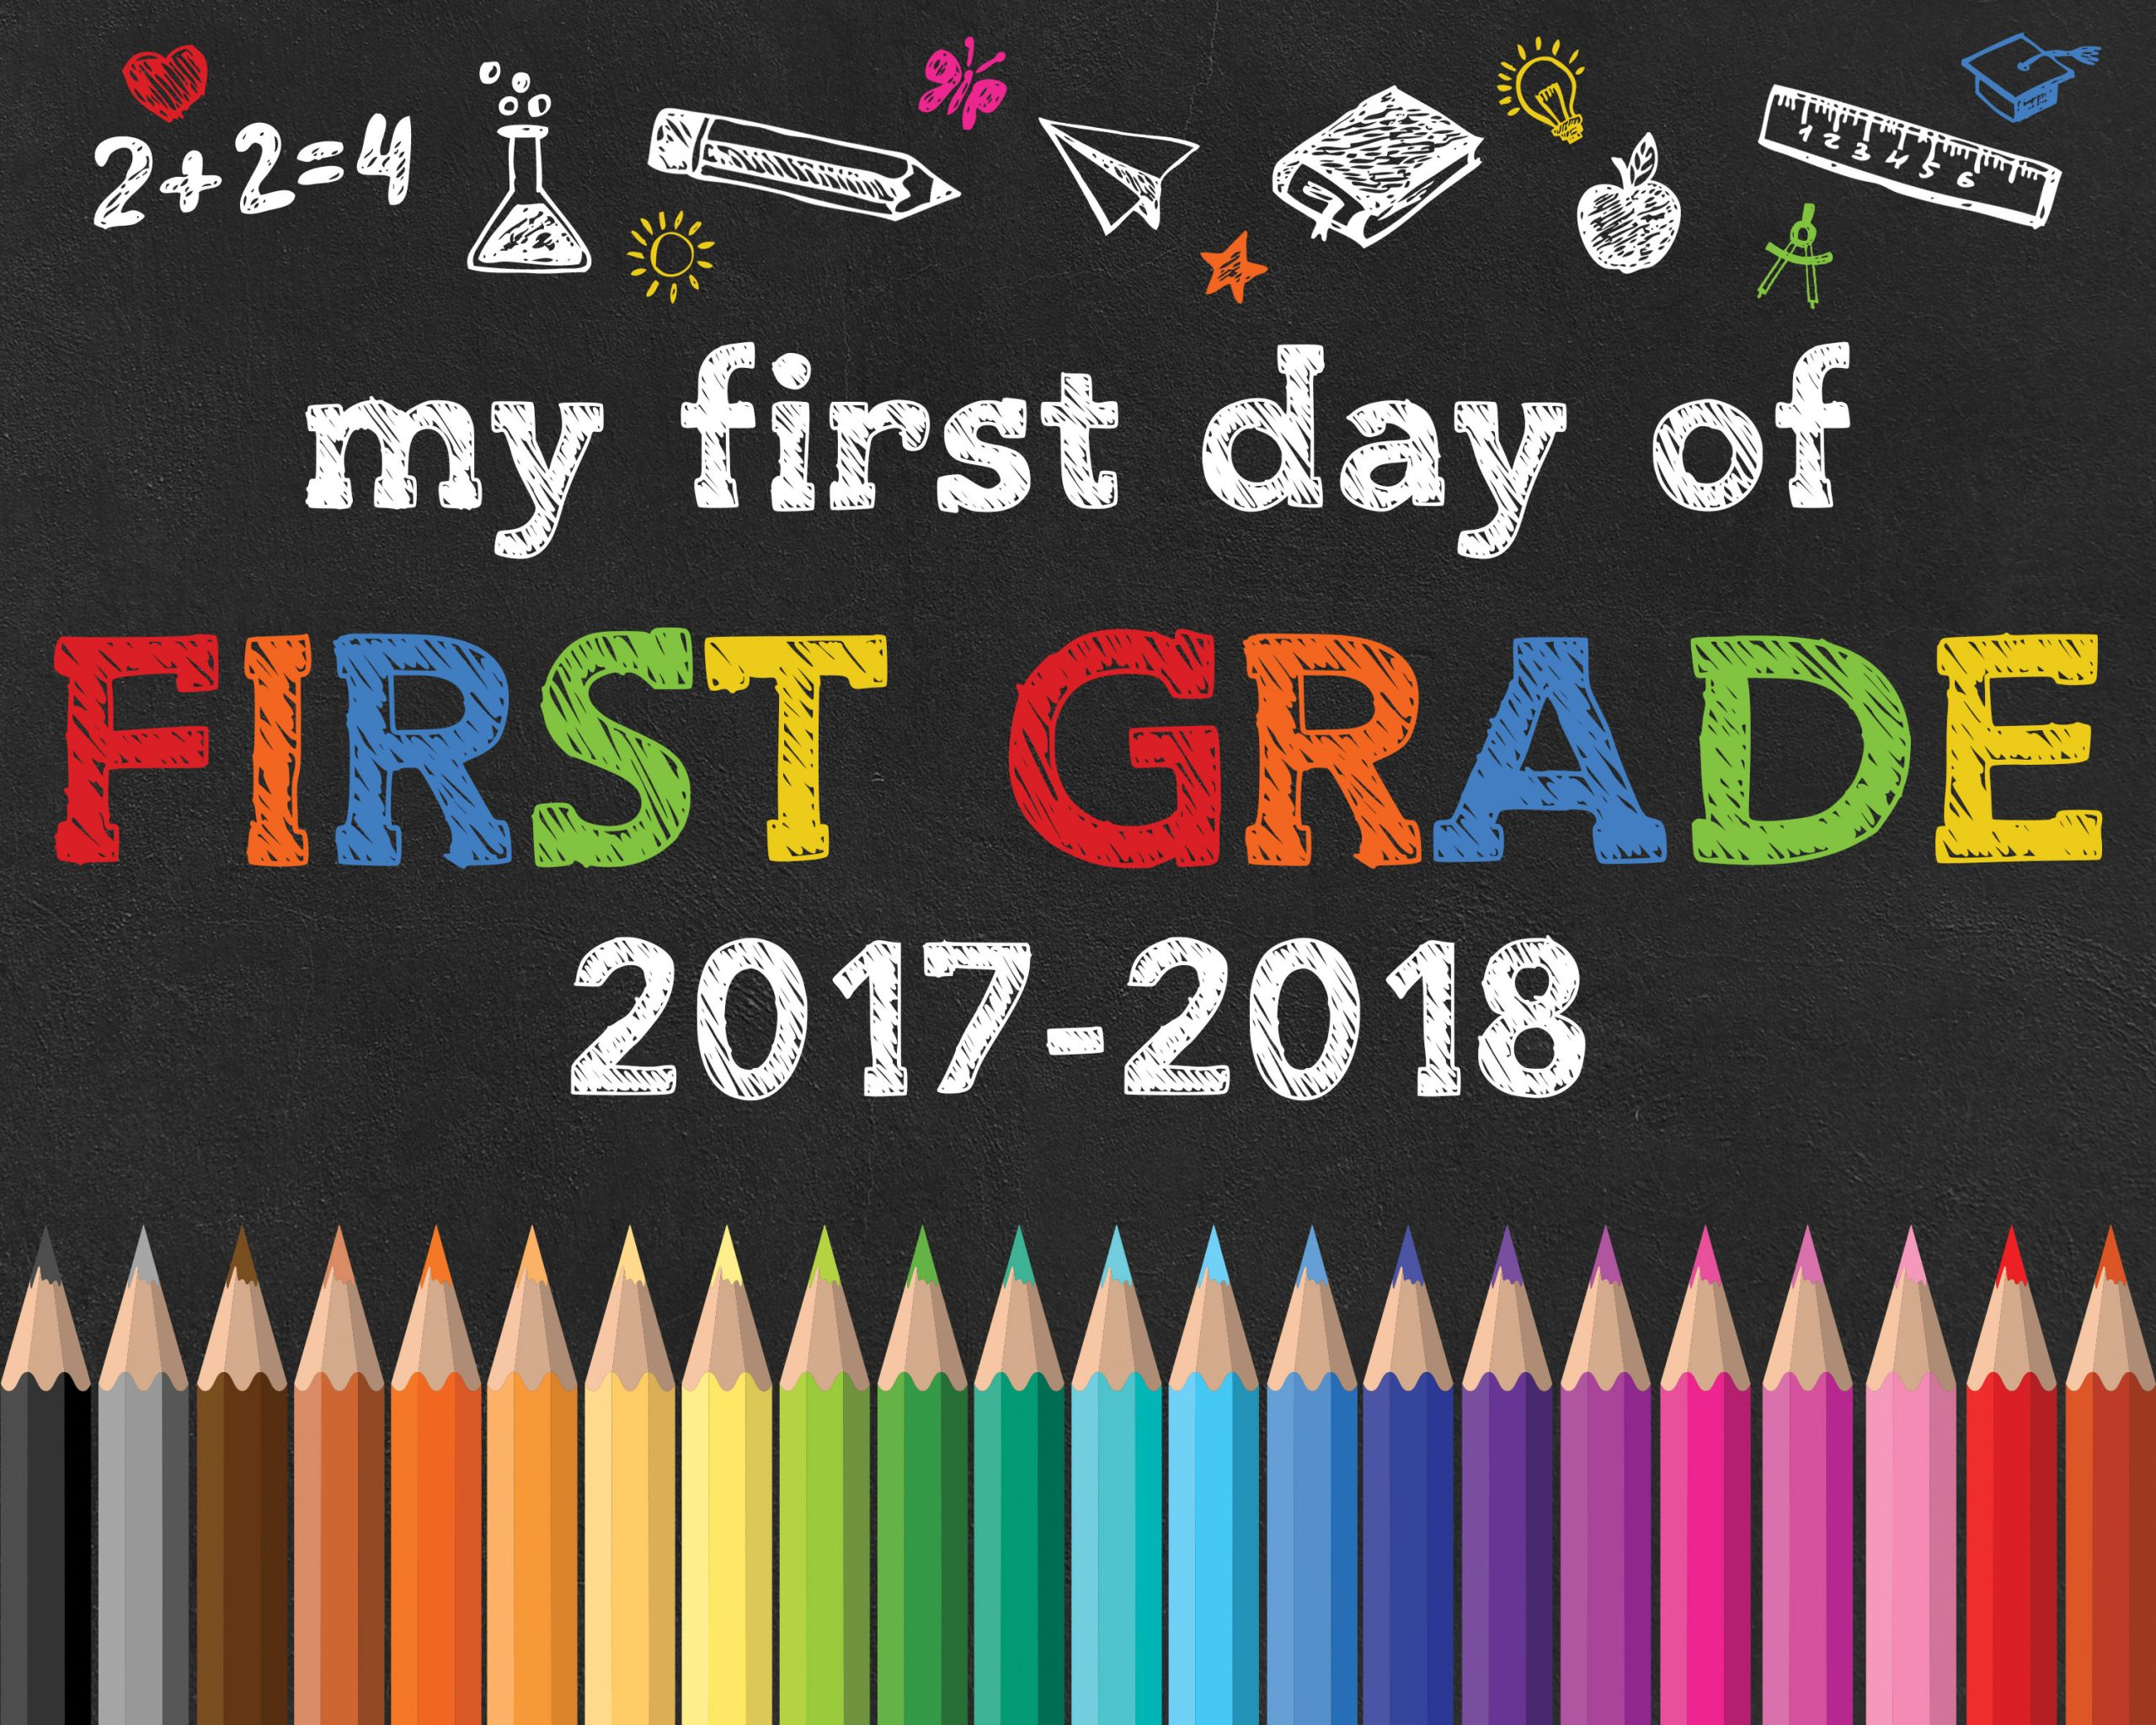 photograph relating to First Day of Second Grade Printable Sign referred to as Again toward College or university Free of charge Printable Chalkboard Symptoms - The Cottage